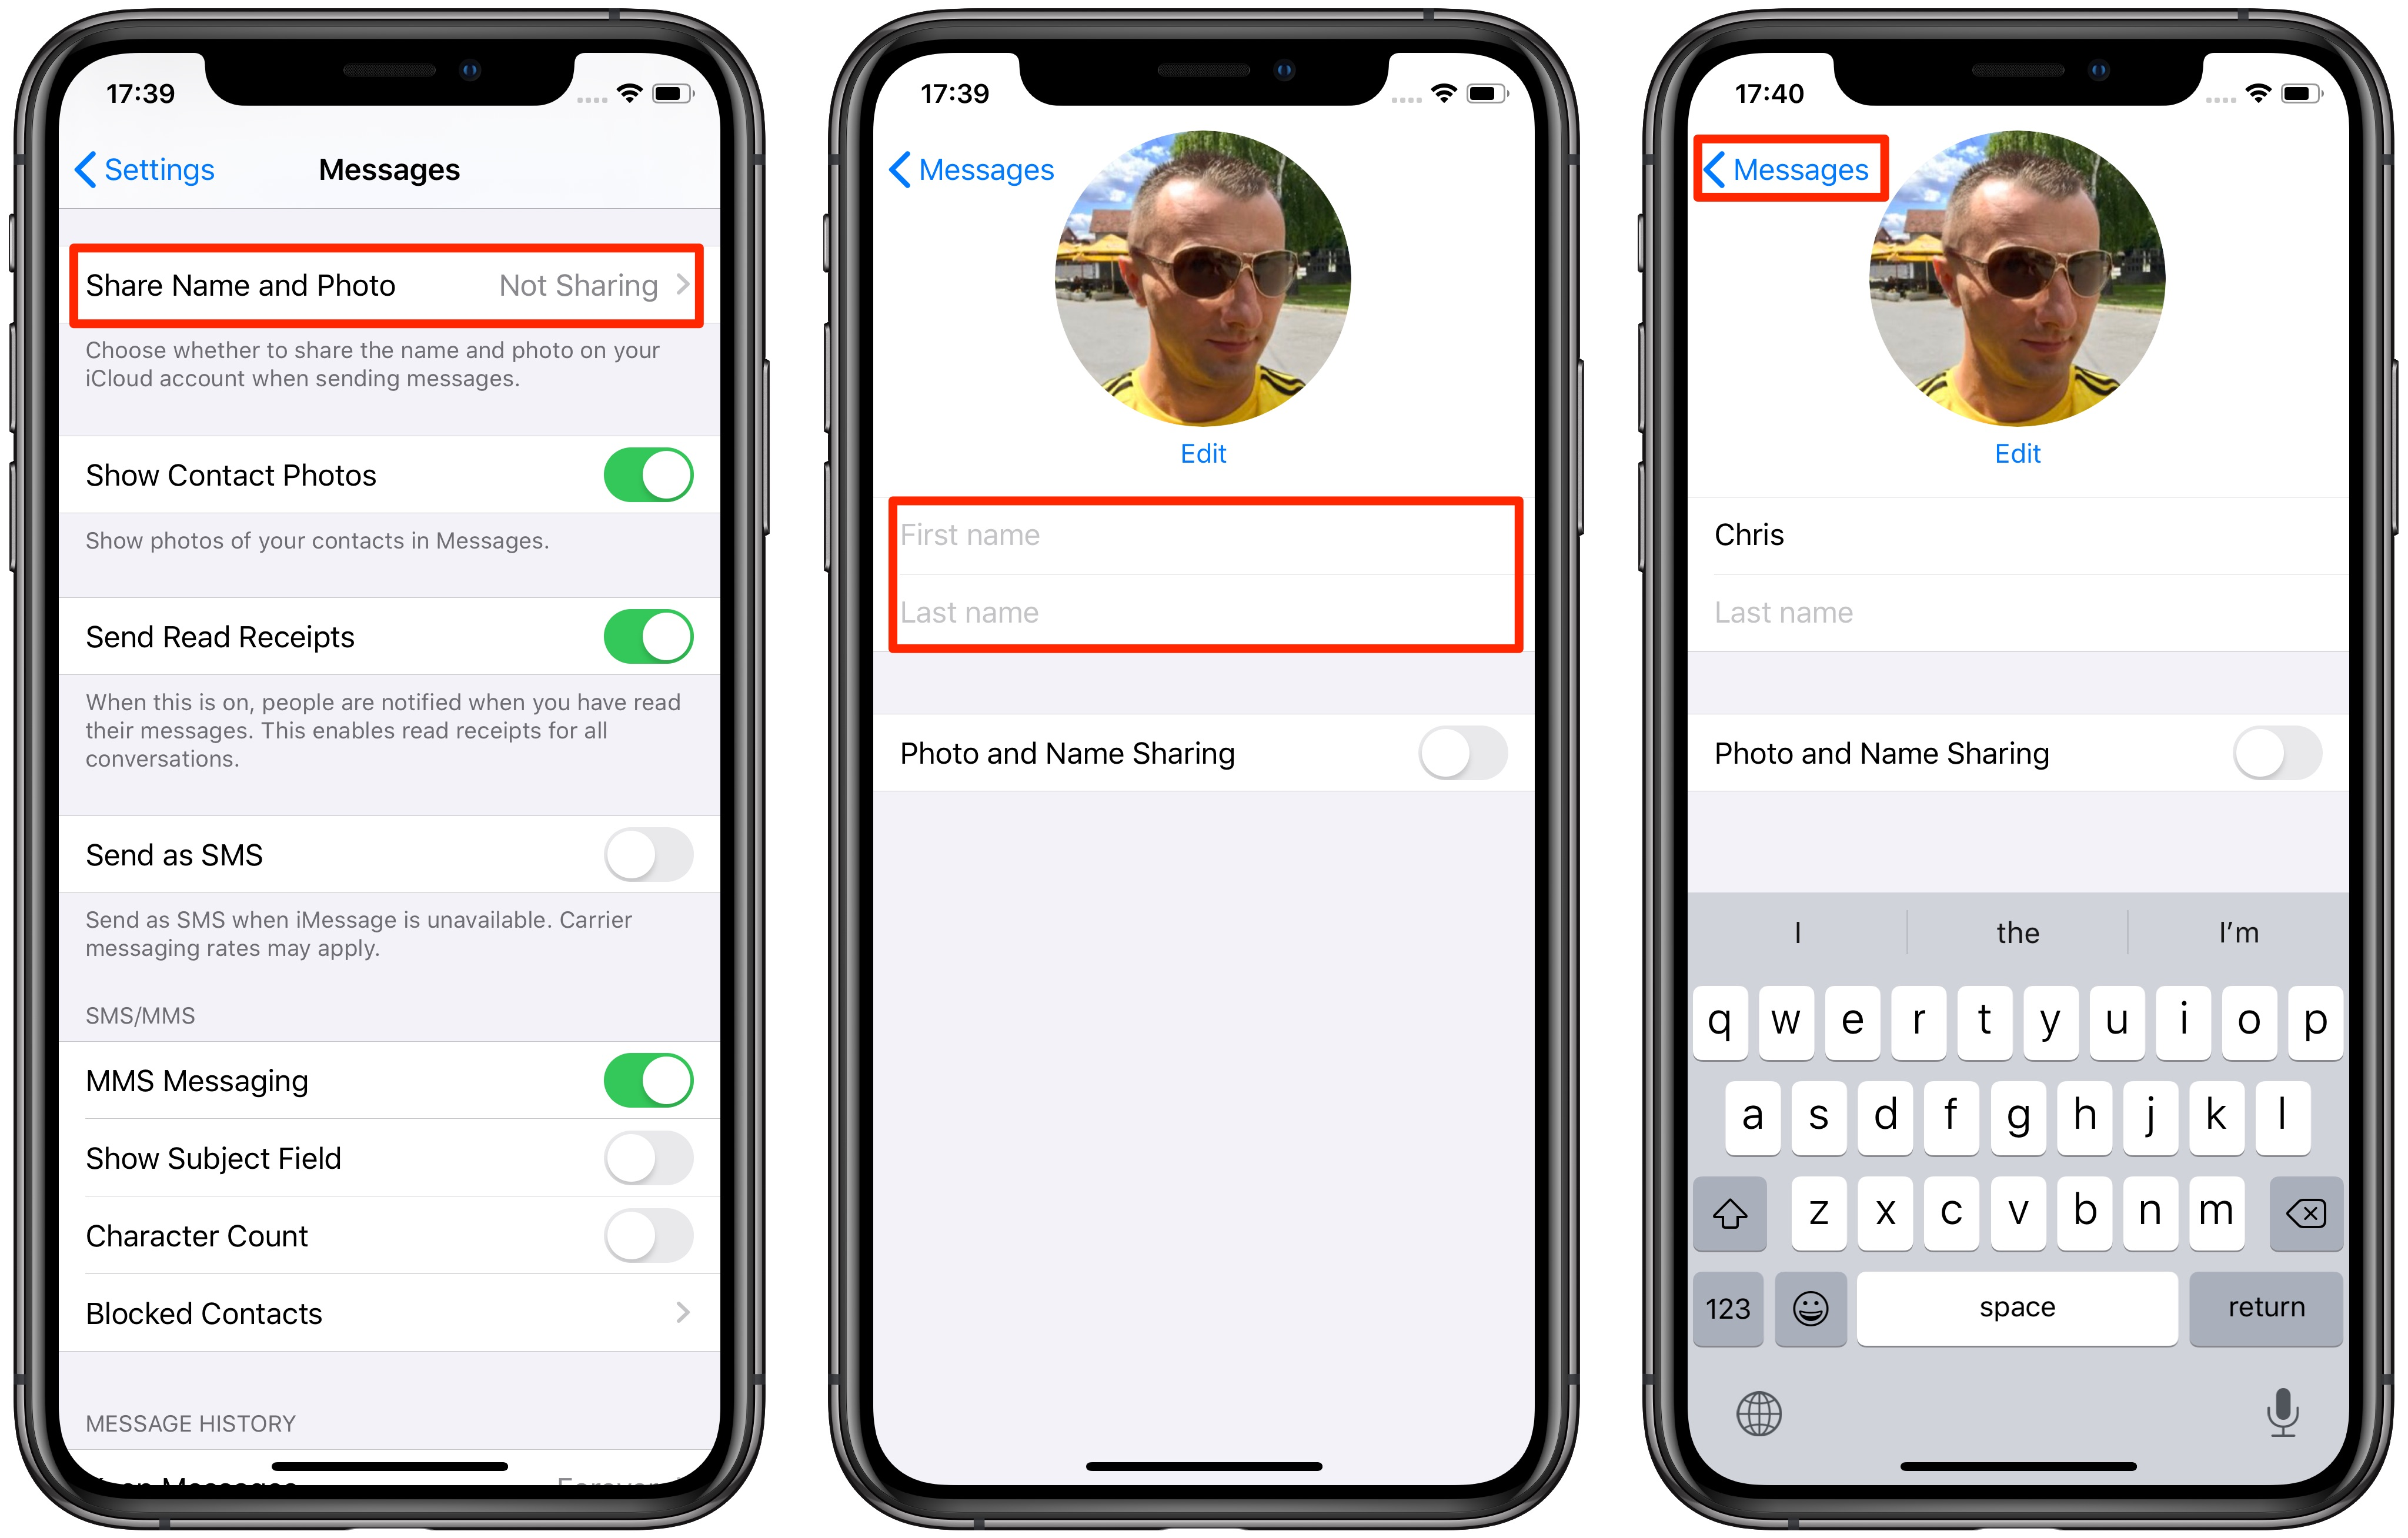 How to change my contact on iphone